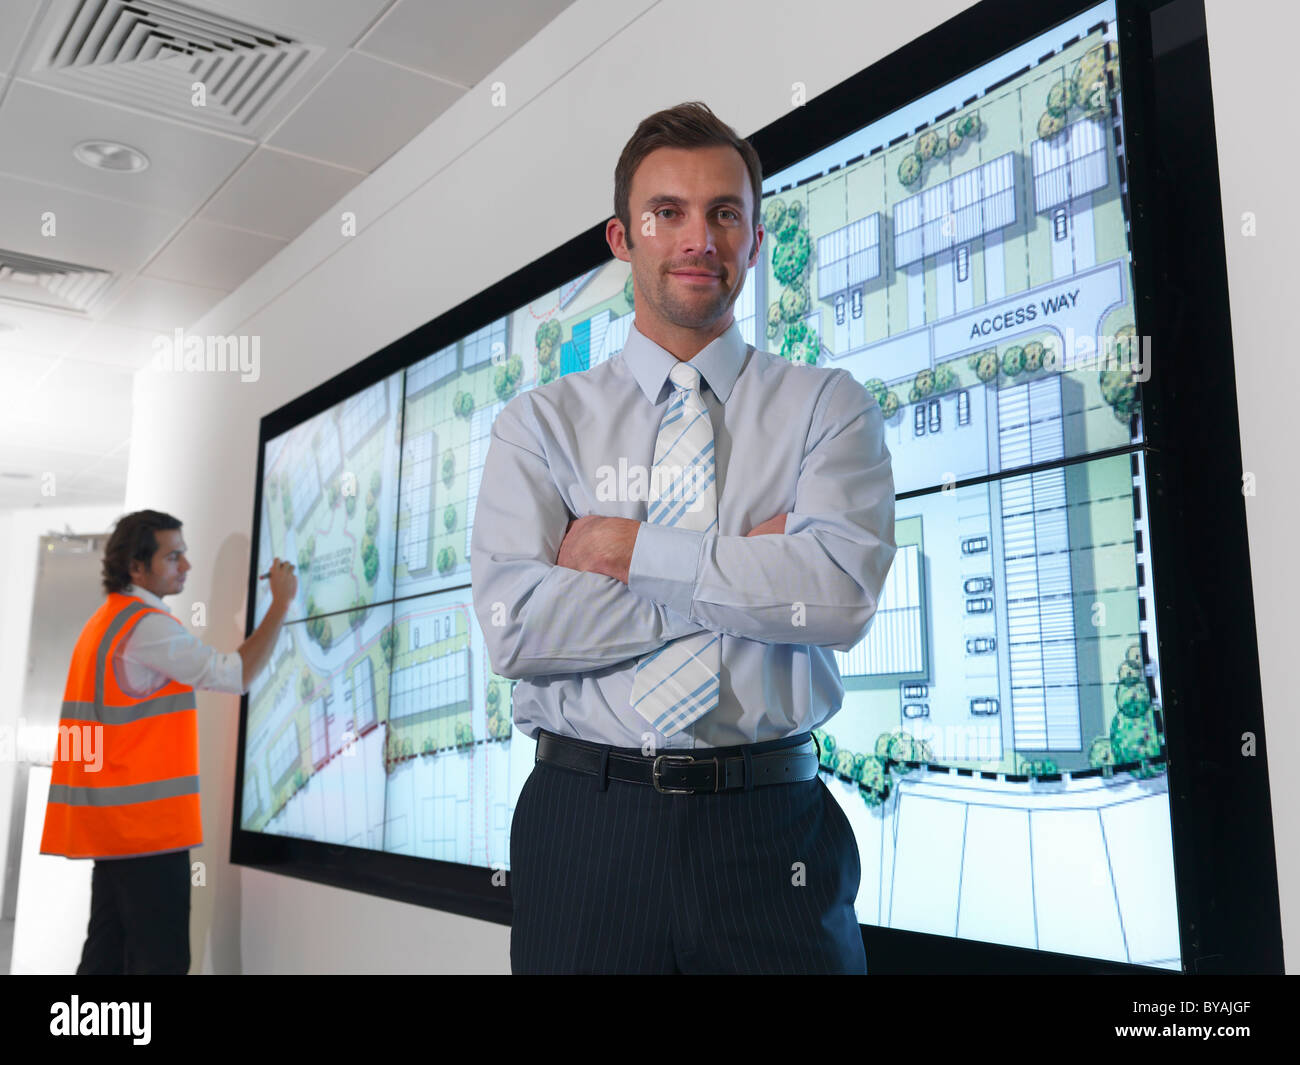 Architects with plans on screen - Stock Image